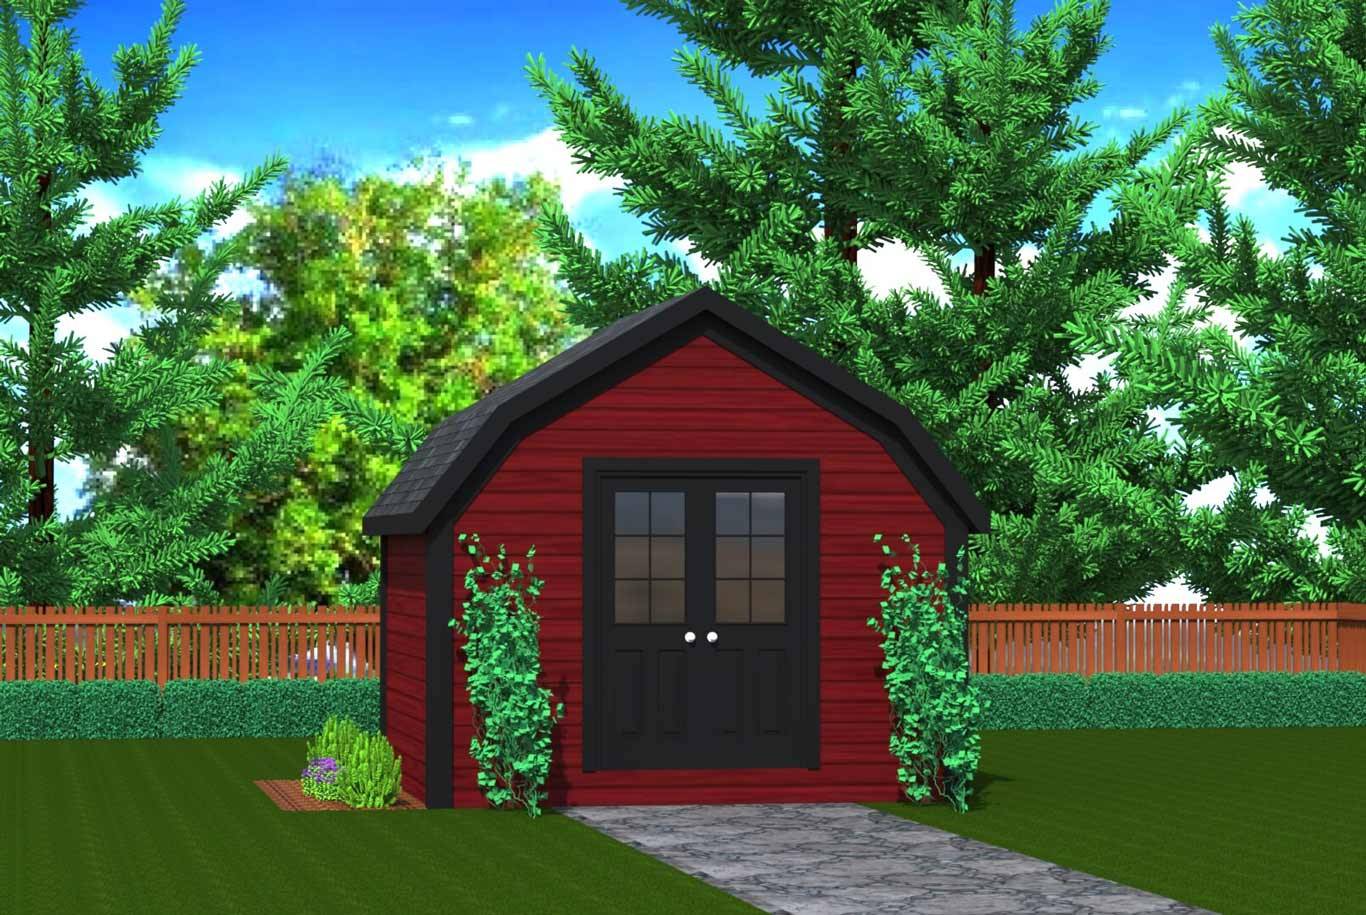 120 sq.ft. (11.15 sq.m.) timber mart shed with red stain wood and french doors